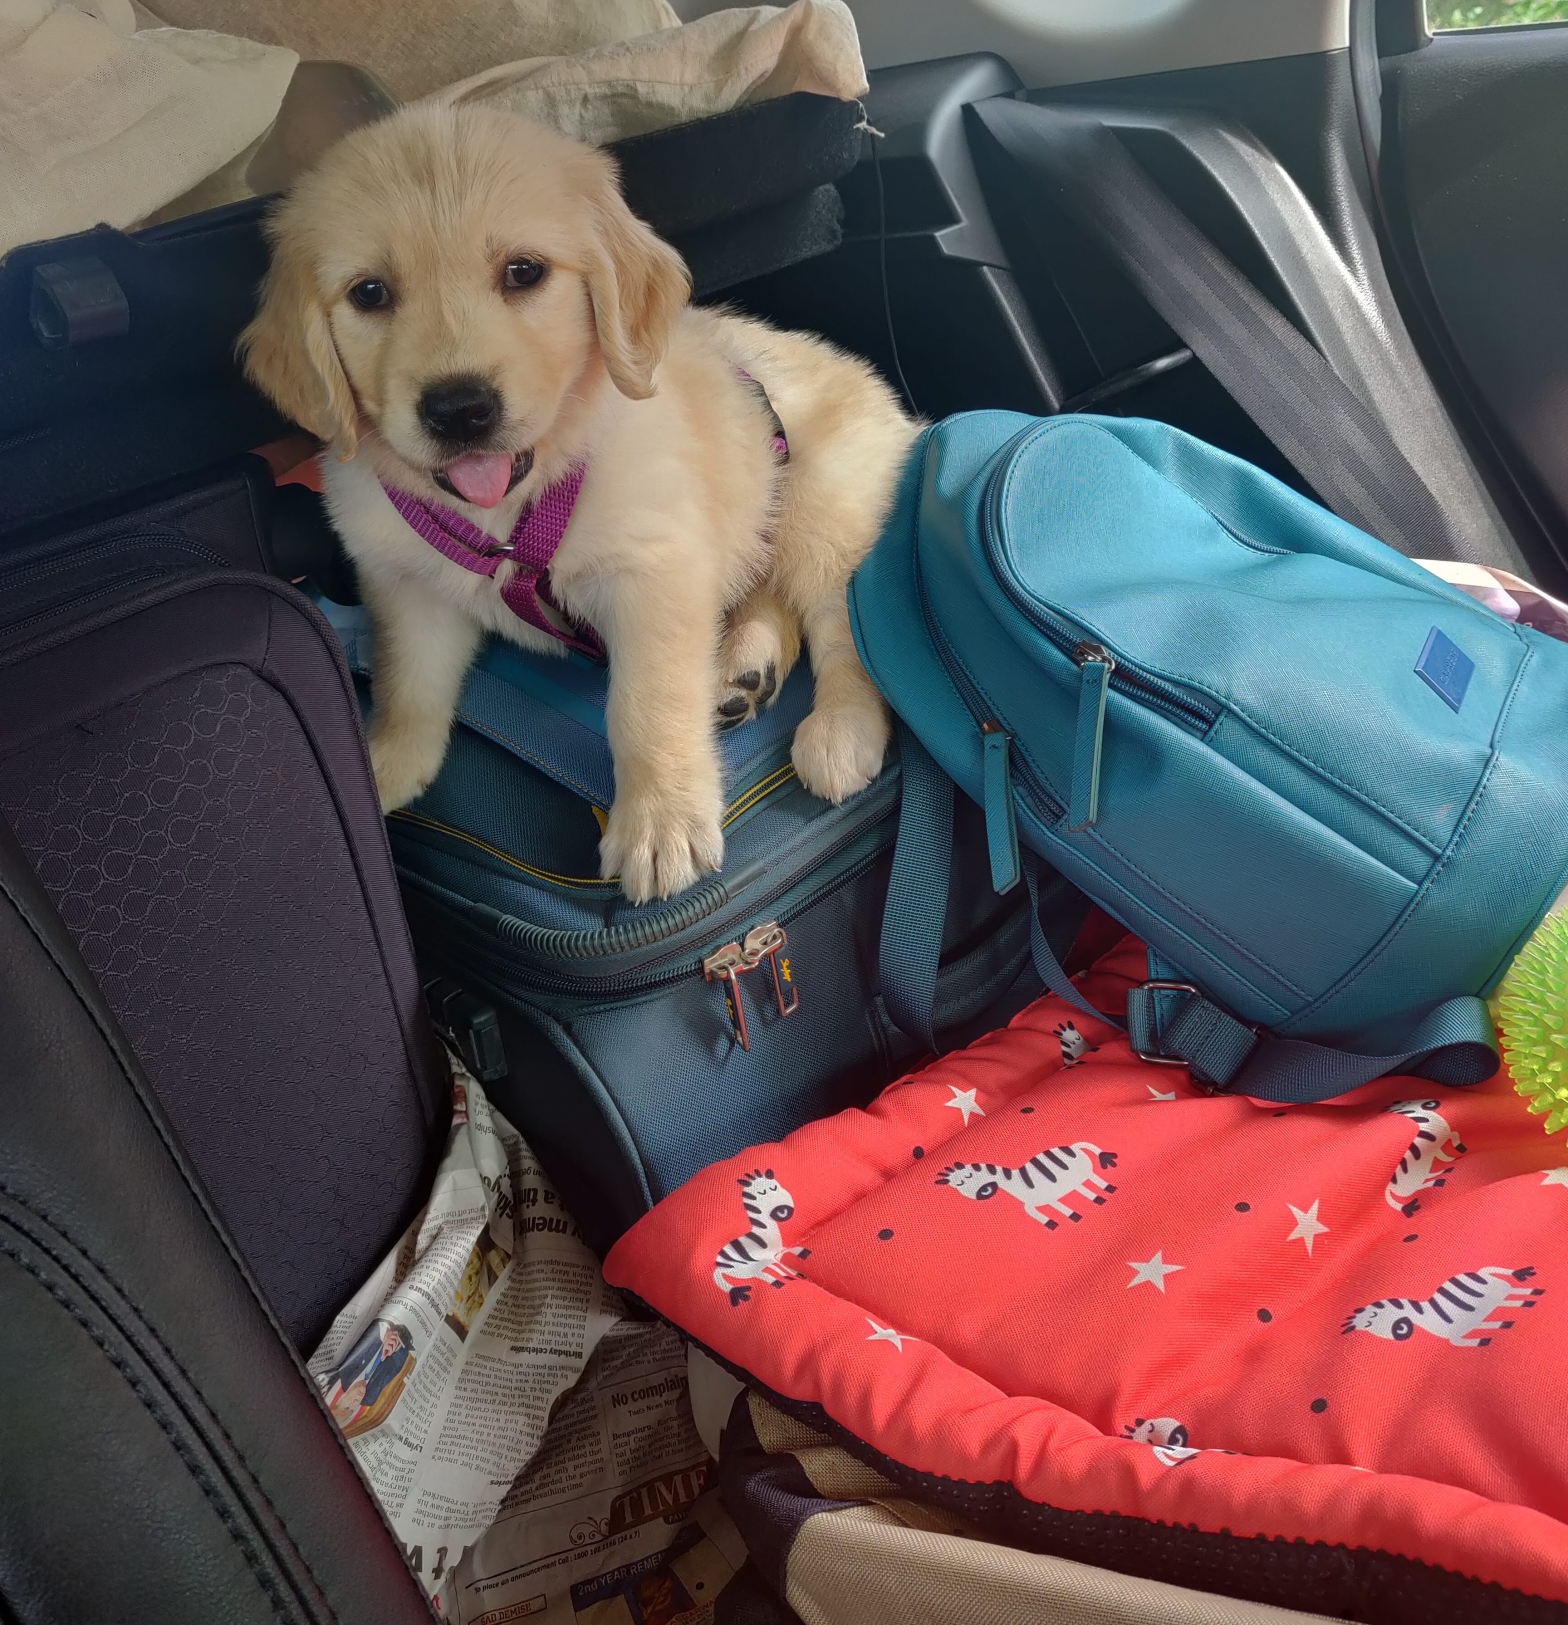 A month old pup atop luggage, ready to travel for the first time.